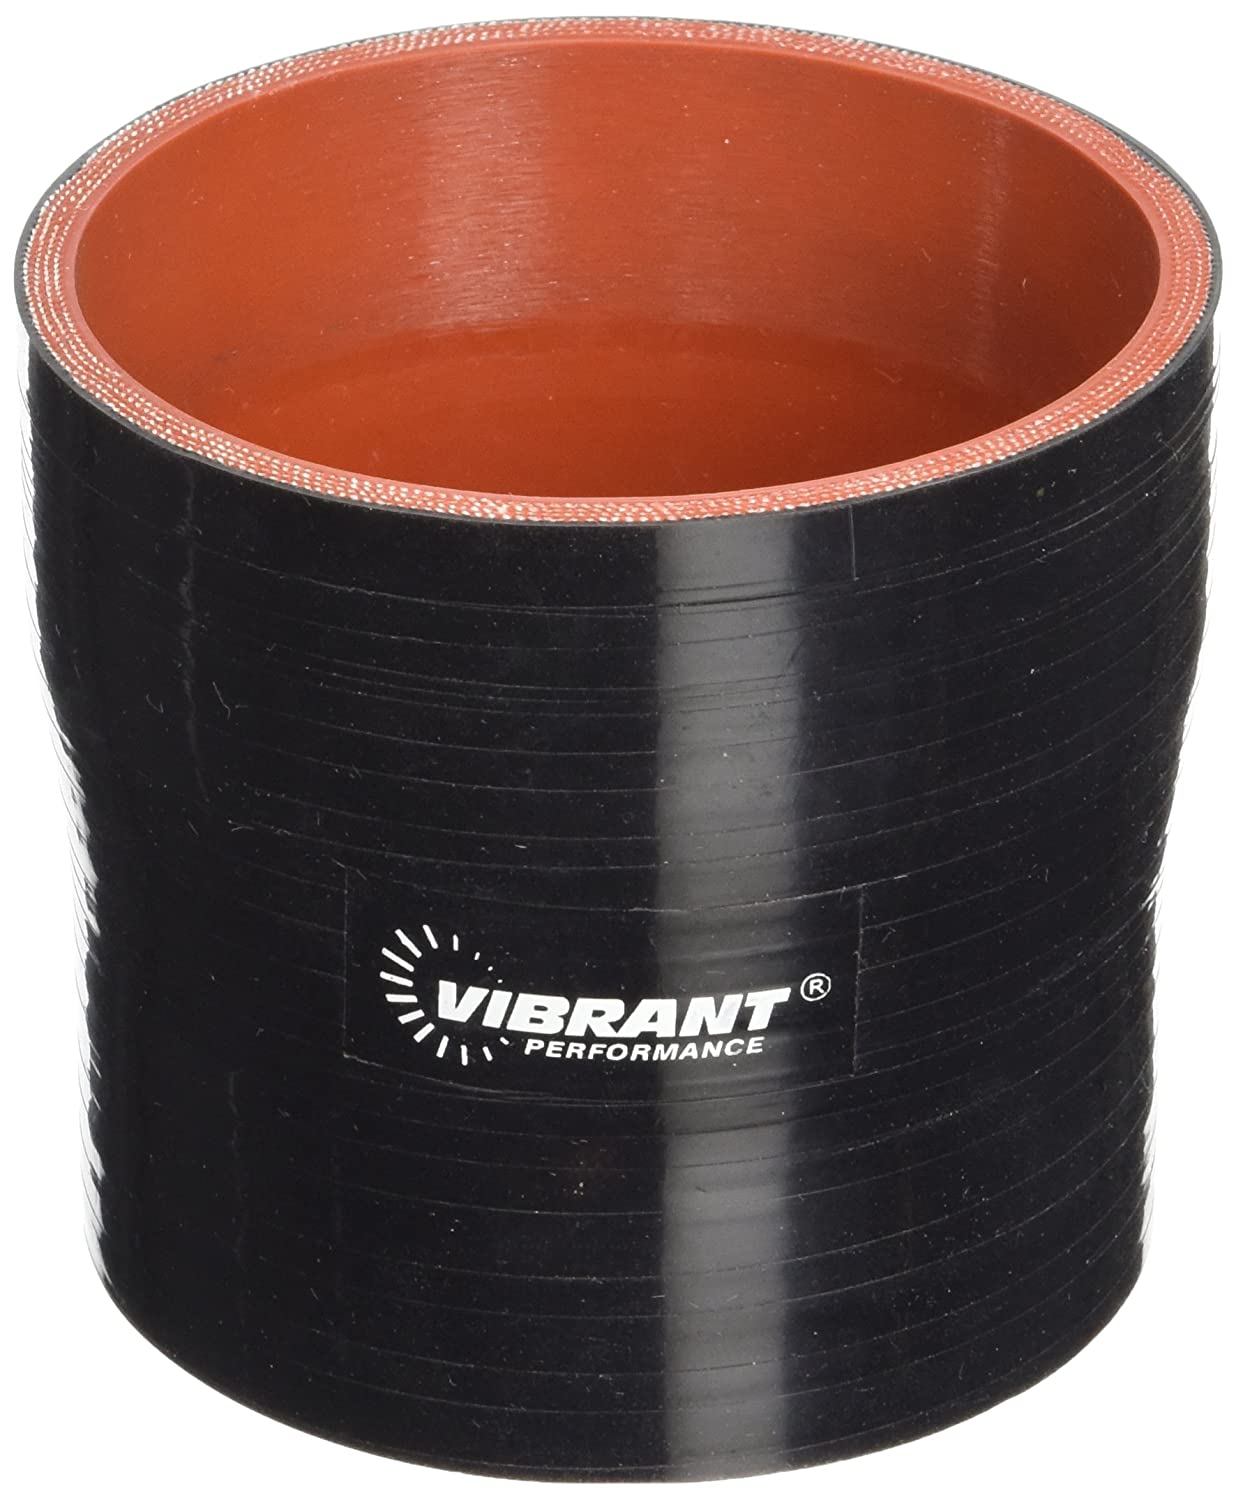 Vibrant 2773 4 Ply Reinfr Sil Tran Con